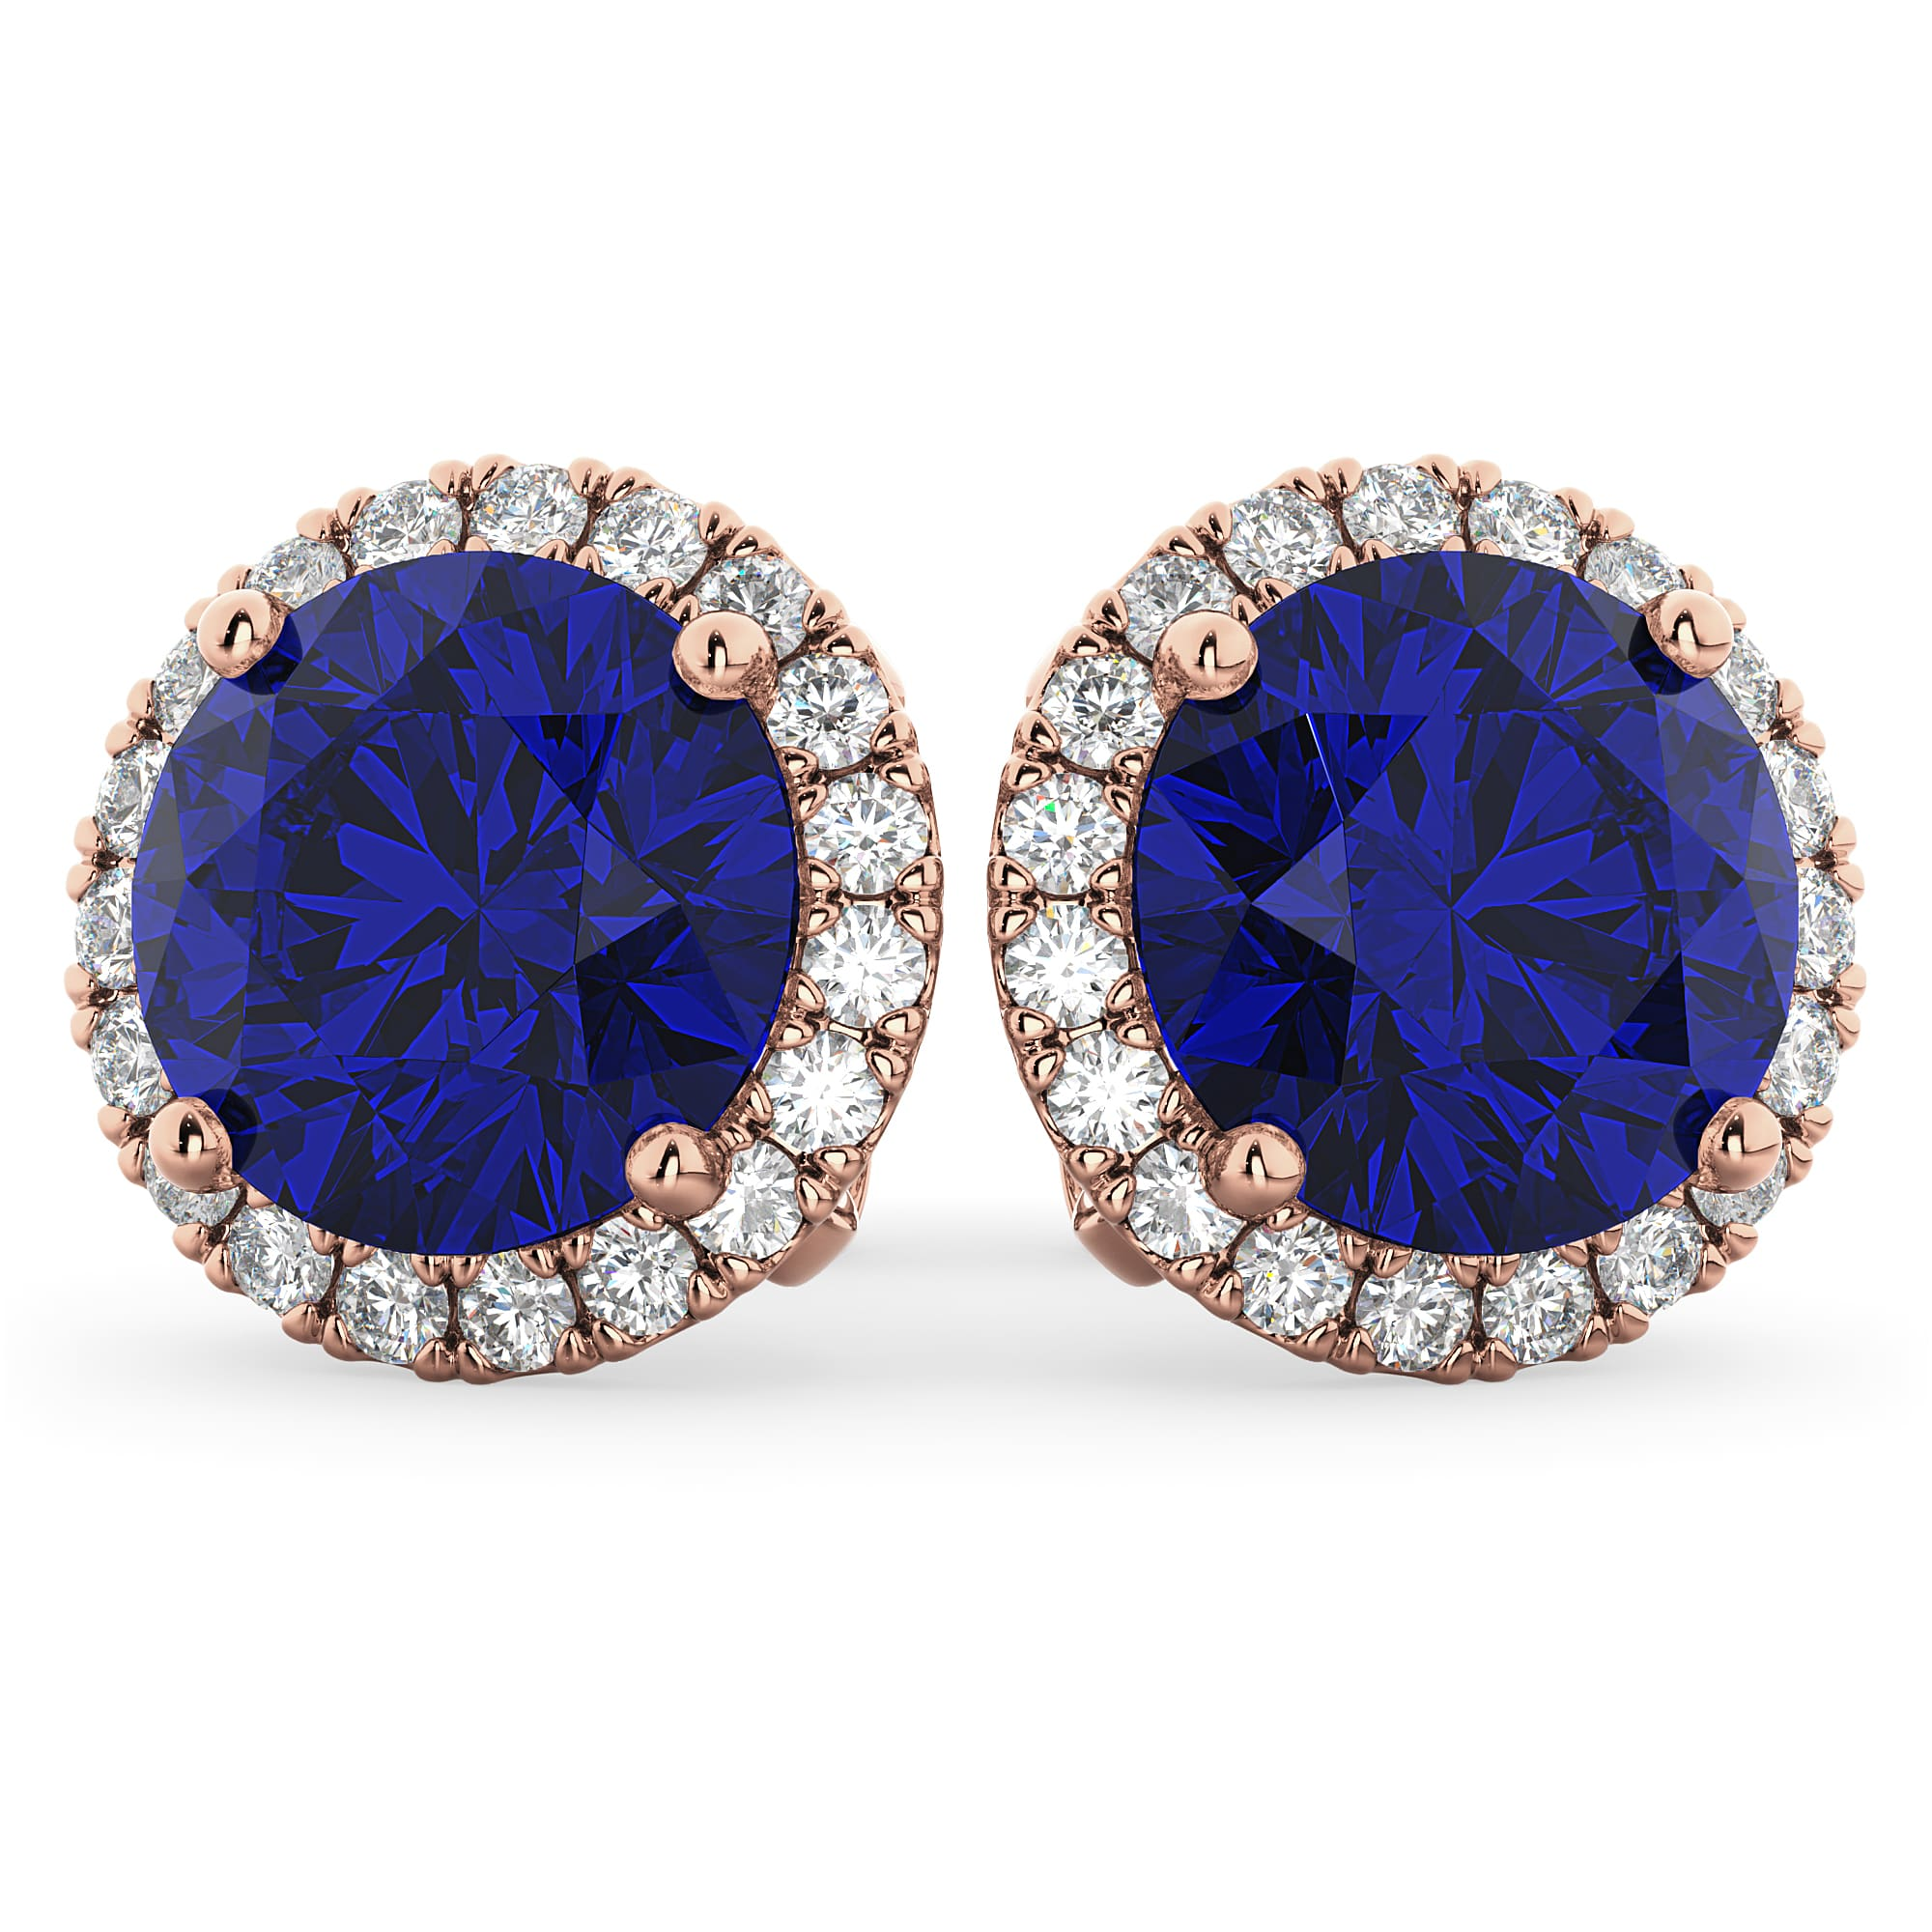 Halo Round Blue Sapphire & Diamond Earrings 14k Rose Gold 5 17 ct